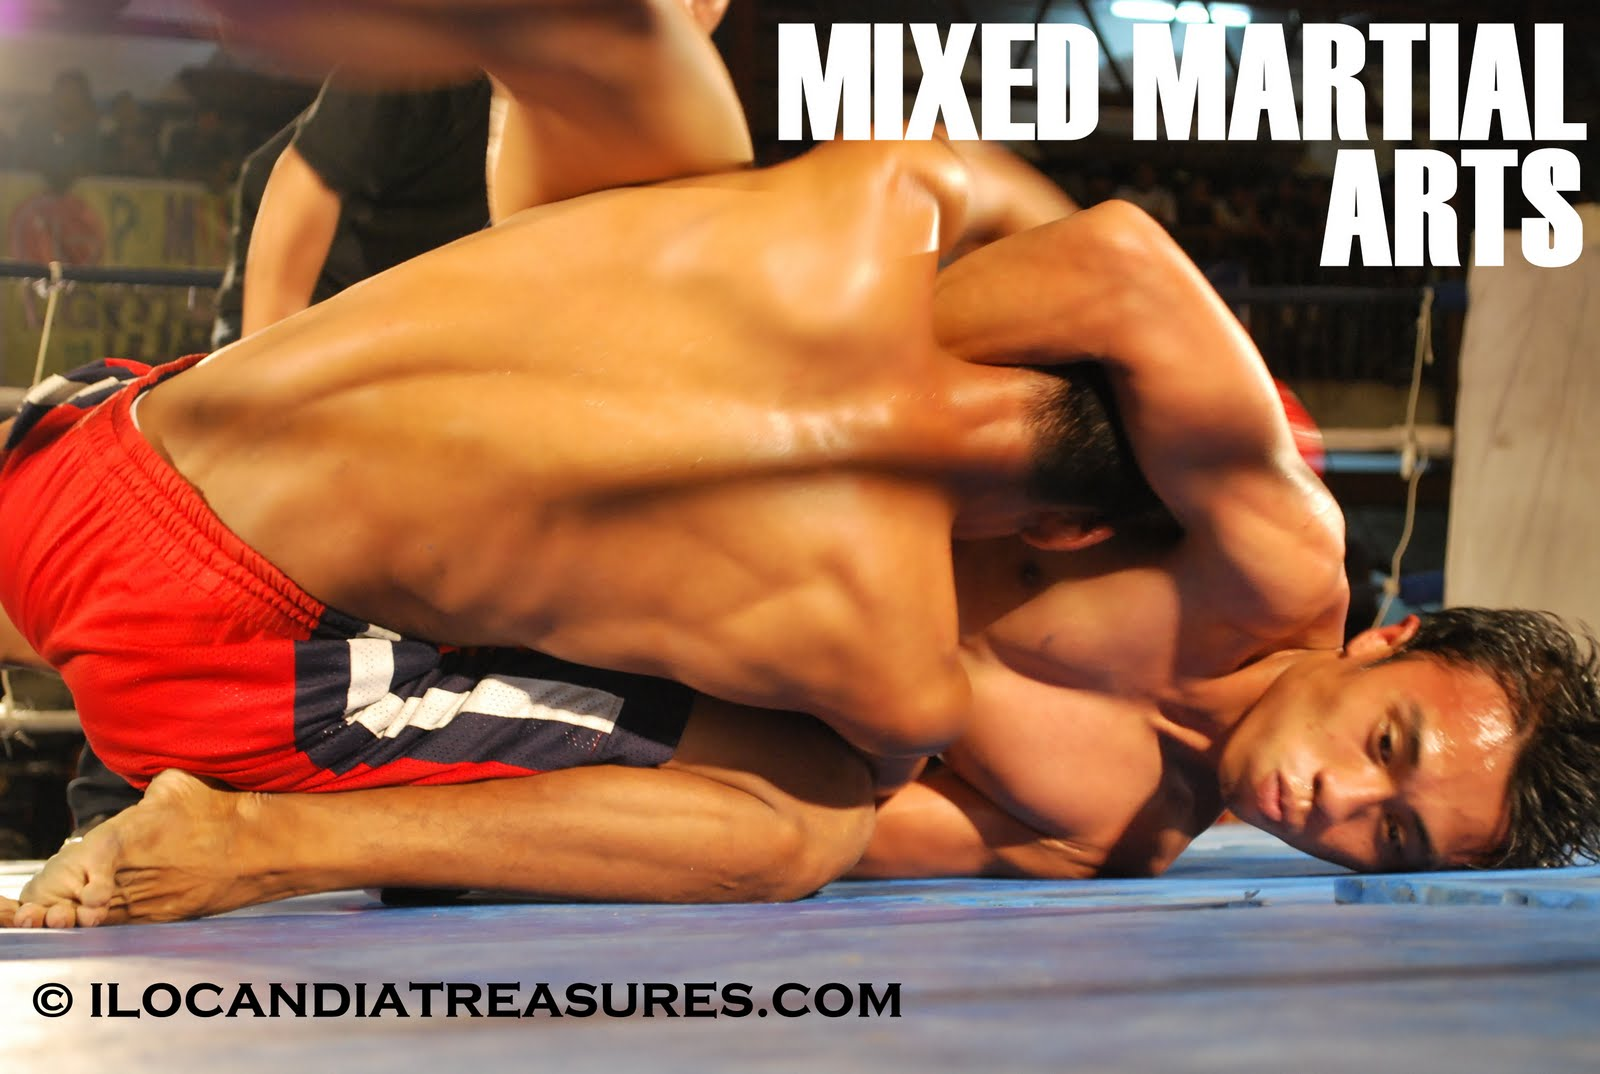 mixed martial arts a full contact Mixed martial arts (mma) is a full contact combat sport that allows the use of both striking and grappling techniques, both standing and on the ground today mma is a.